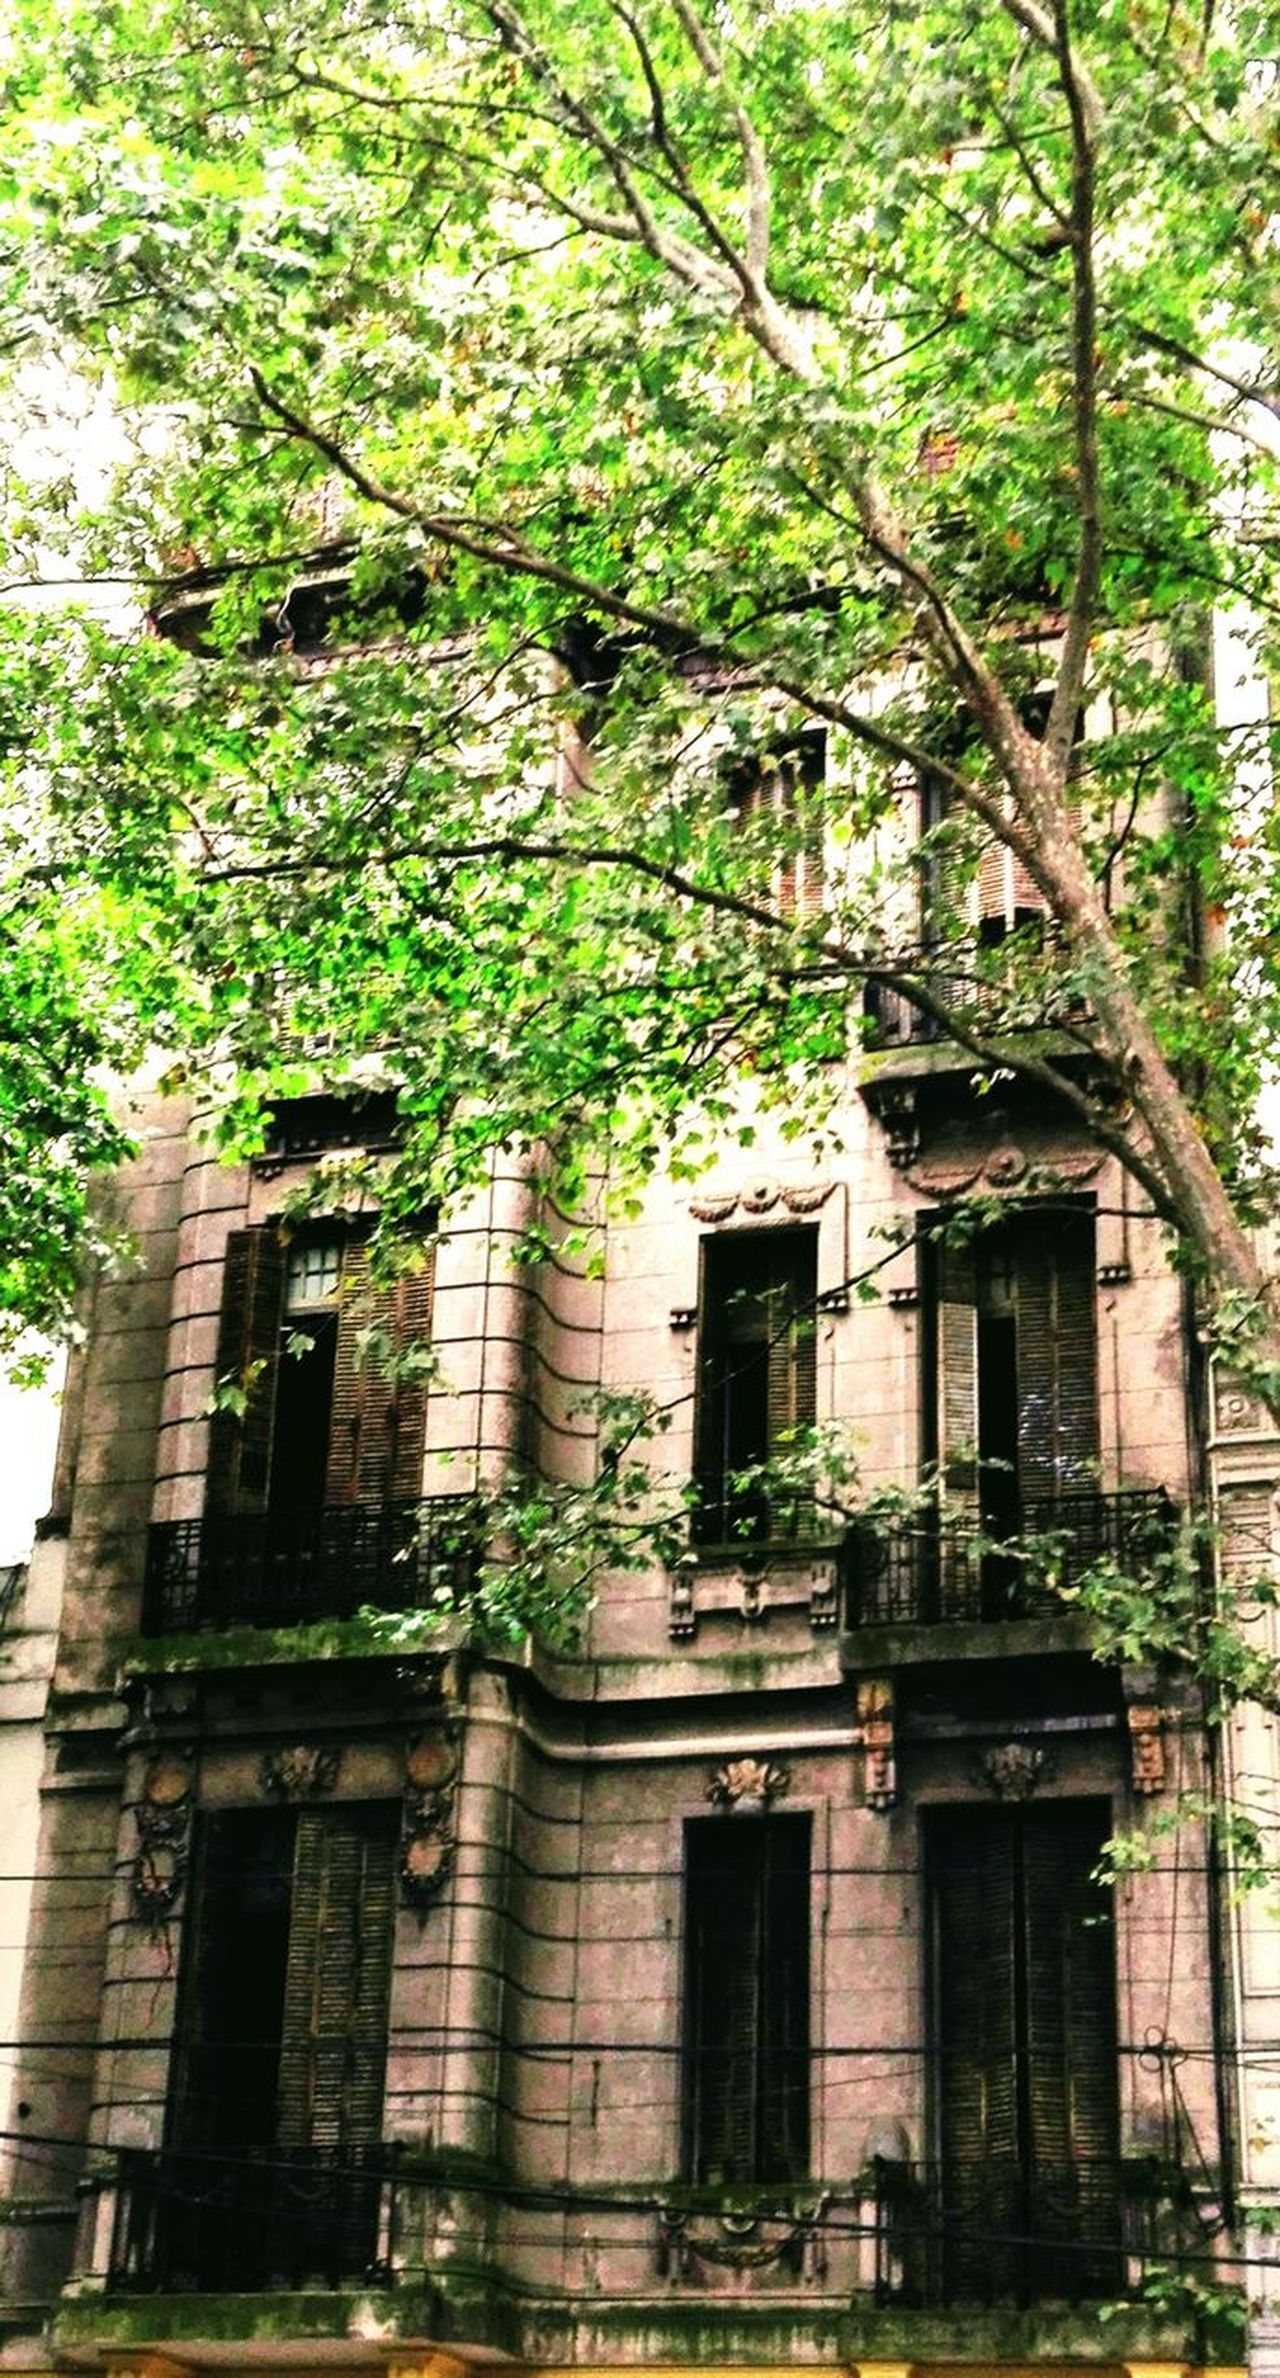 Urban Exploration Cityexplorer City Building Exterior Architecture Built Structure Low Angle View Outdoors Tree No People Growth City Day Nature